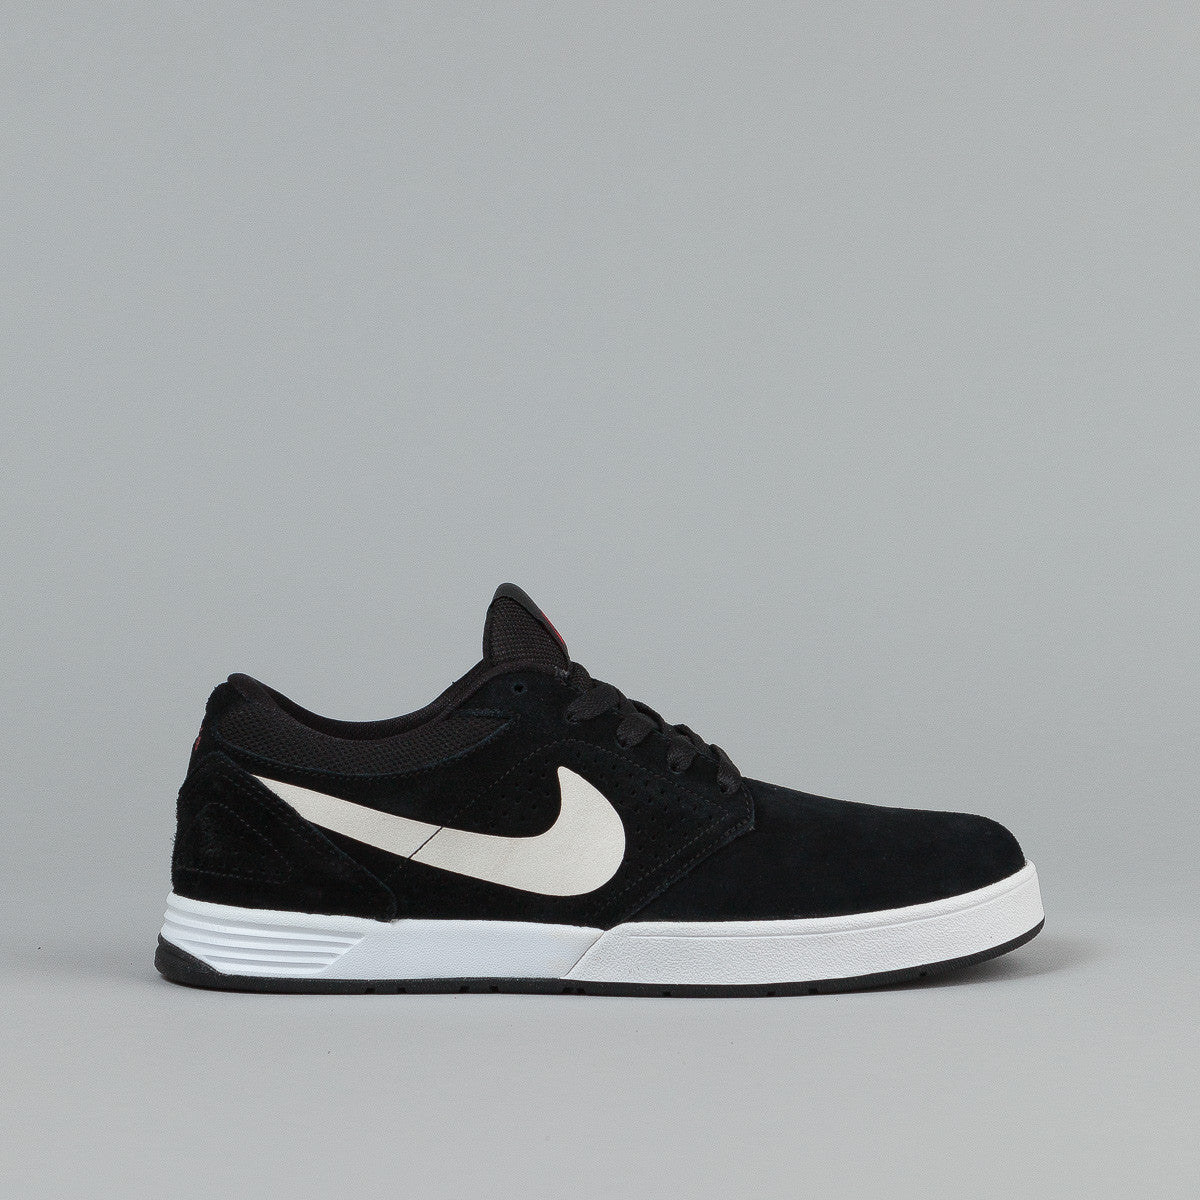 Nike SB Paul Rodriguez 5 Shoes